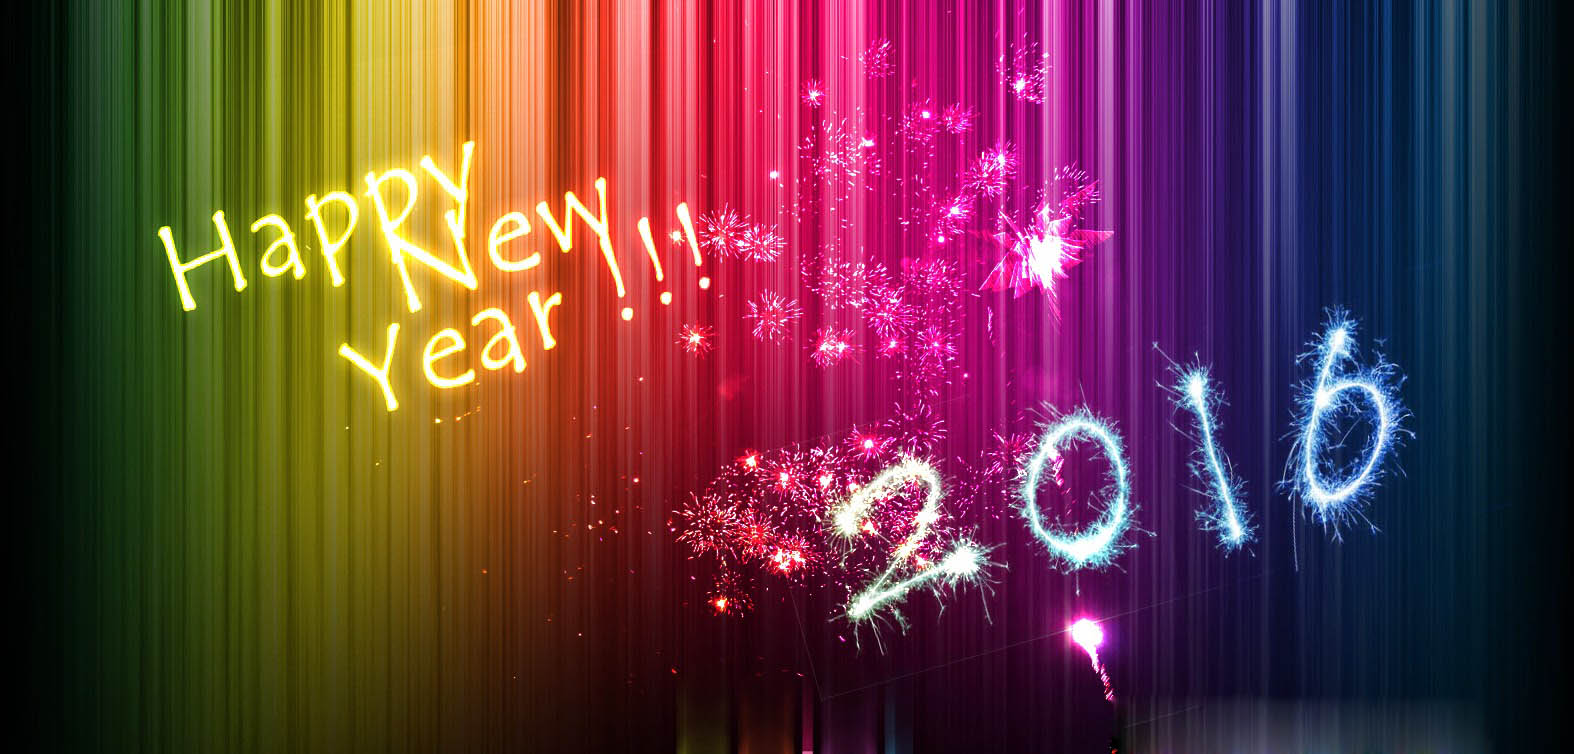 Happy New Year 2016 Wallpapers Images Pics and Pictures Jangoboy 1574x754